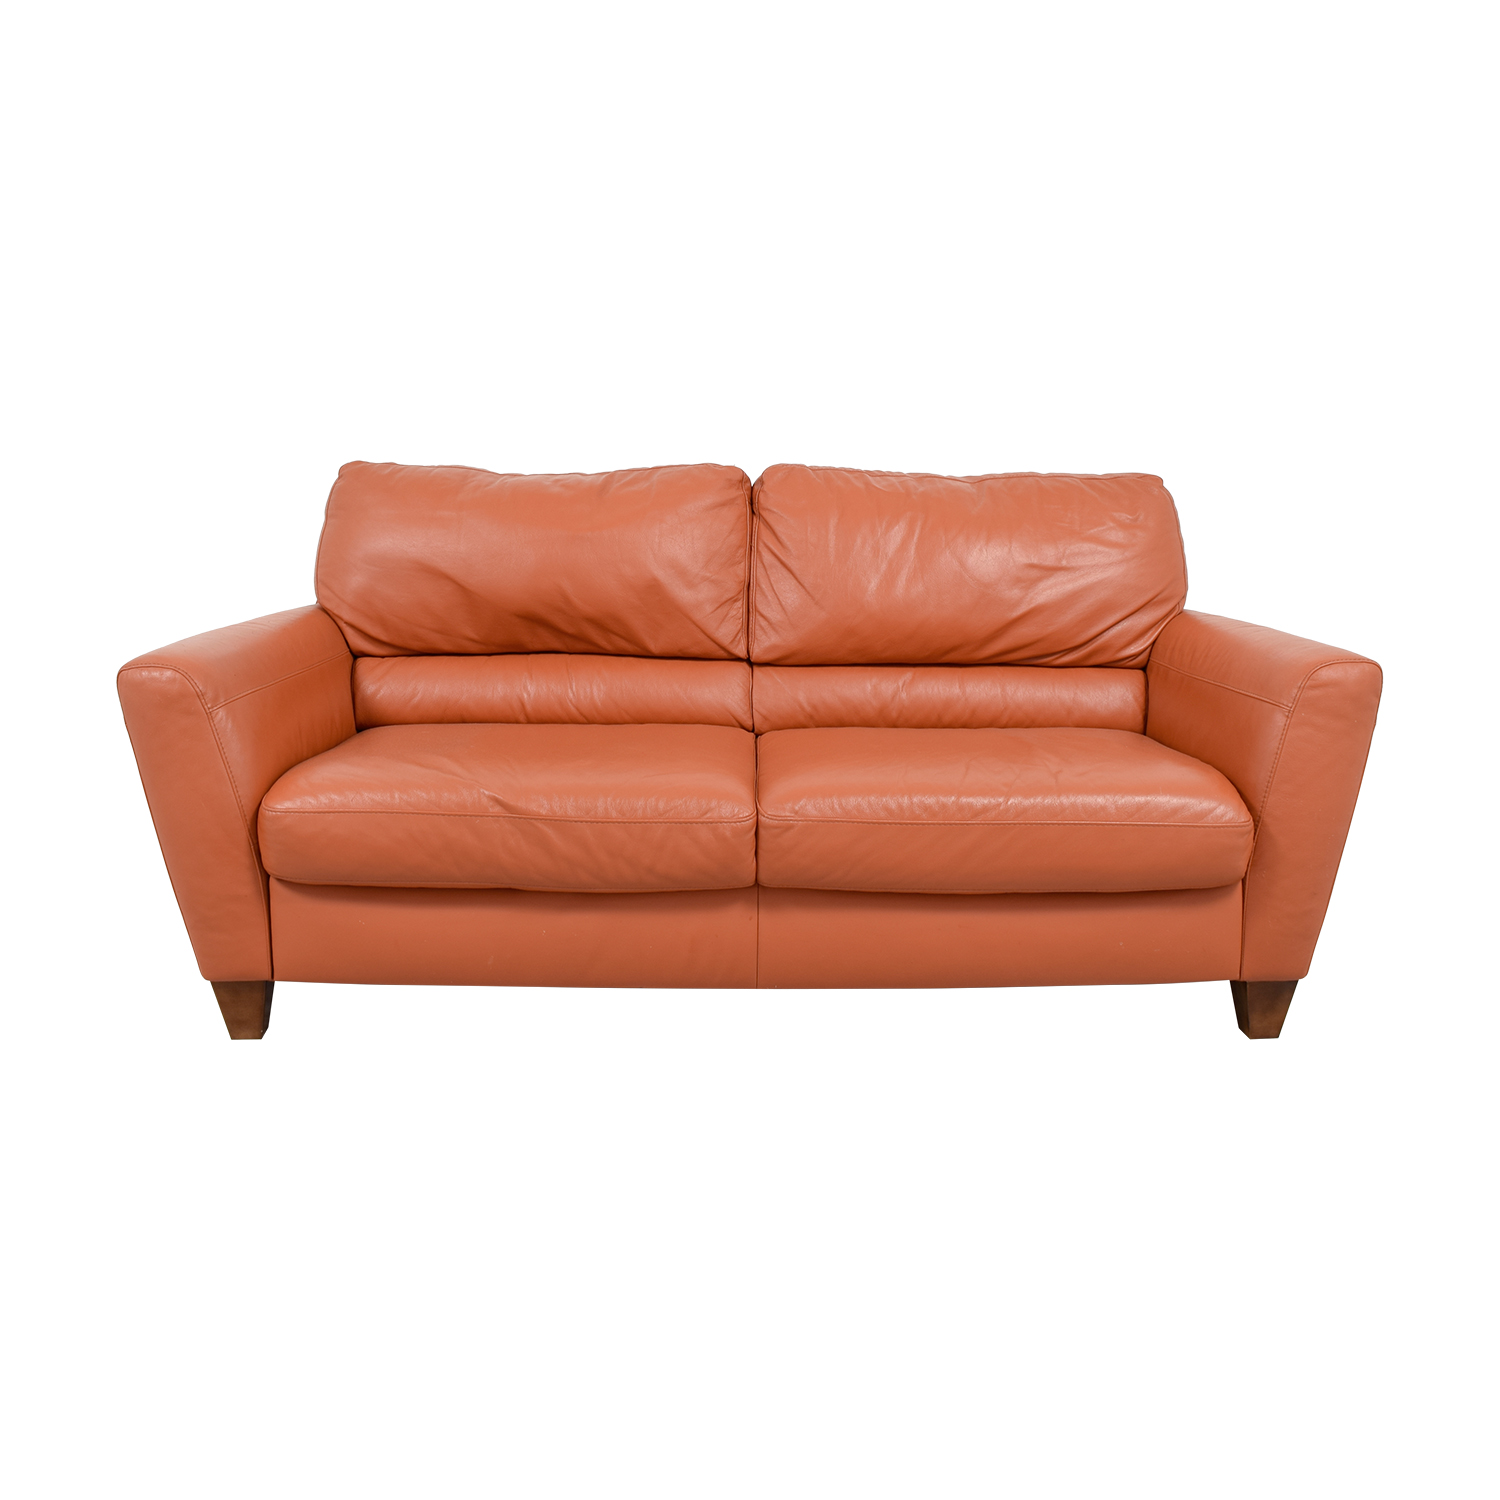 Wondrous 76 Off Natuzzi Natuzzi Amalfi Burnt Orange Leather Sofa Sofas Andrewgaddart Wooden Chair Designs For Living Room Andrewgaddartcom